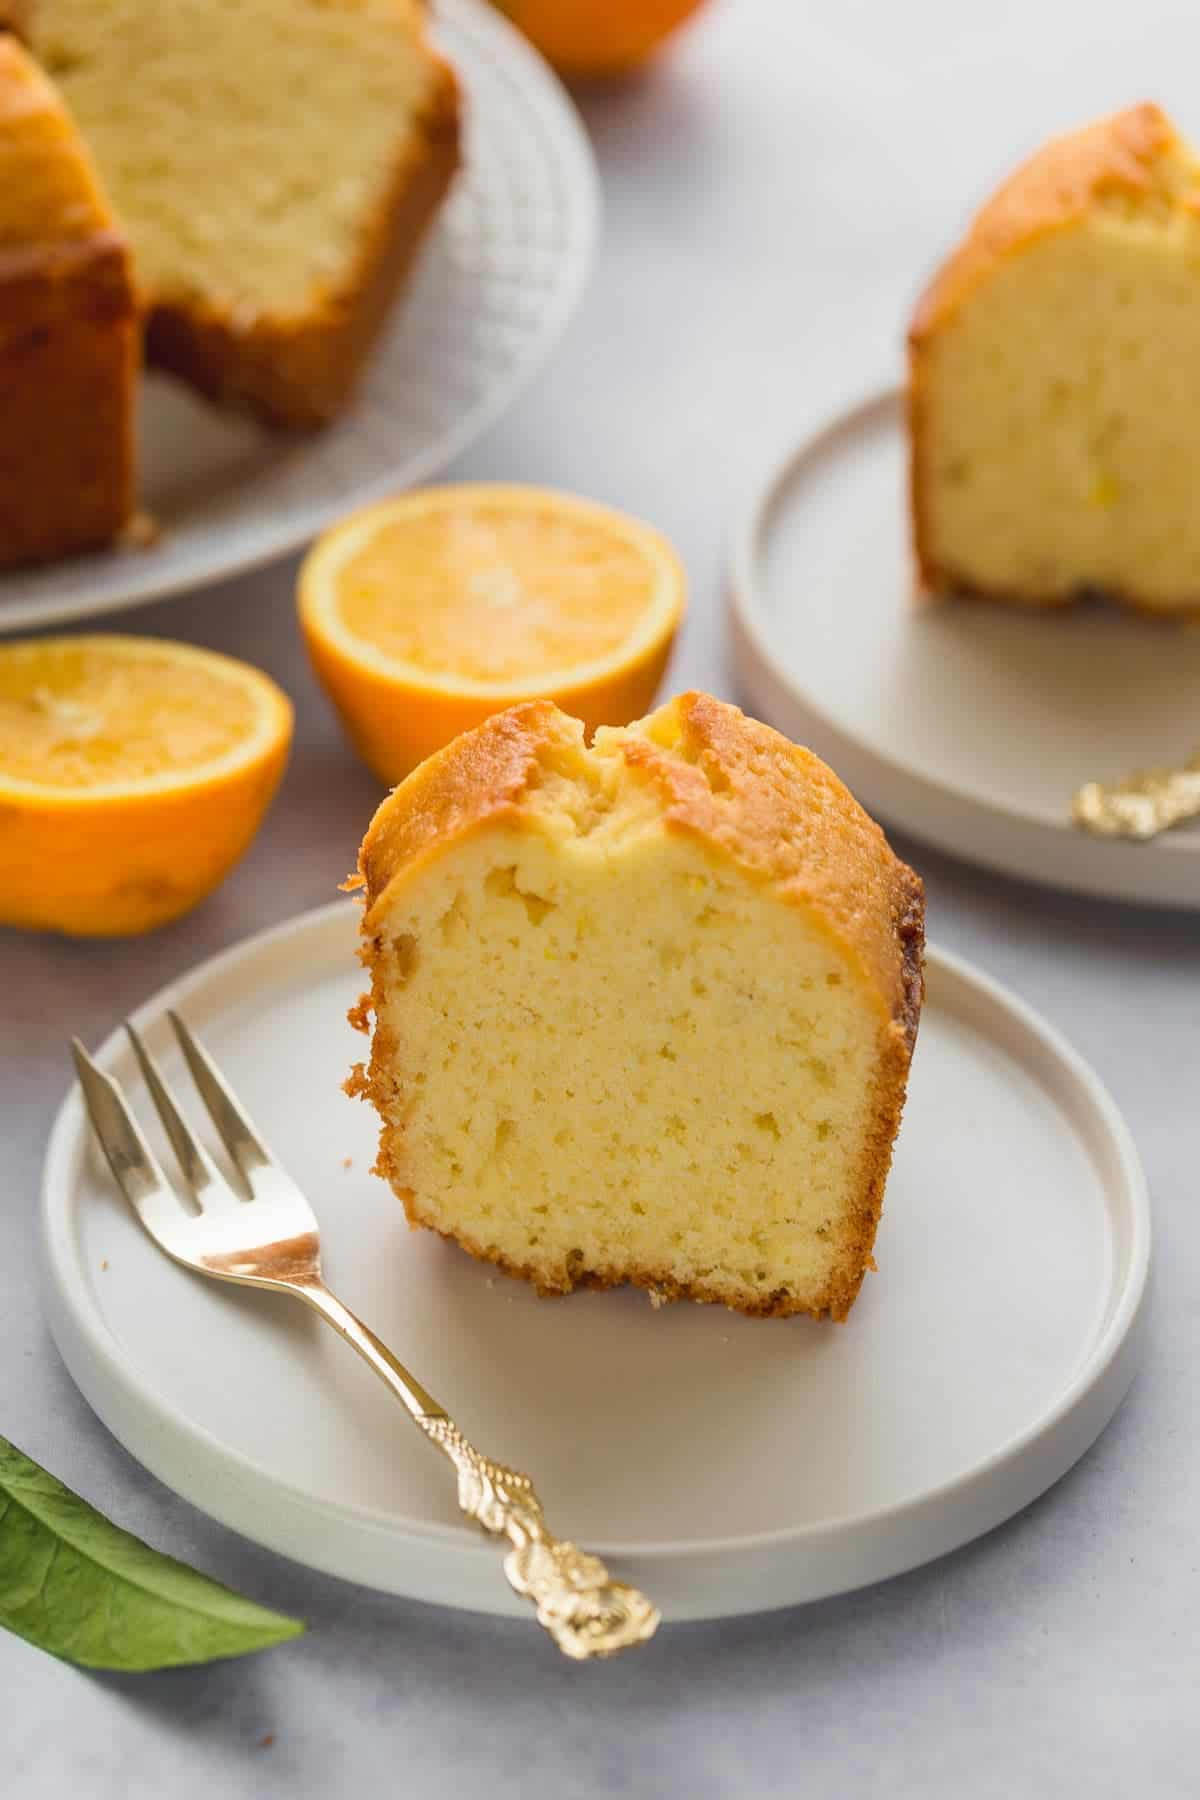 one slice of orange juice cake on a small cake plate with a golden fork